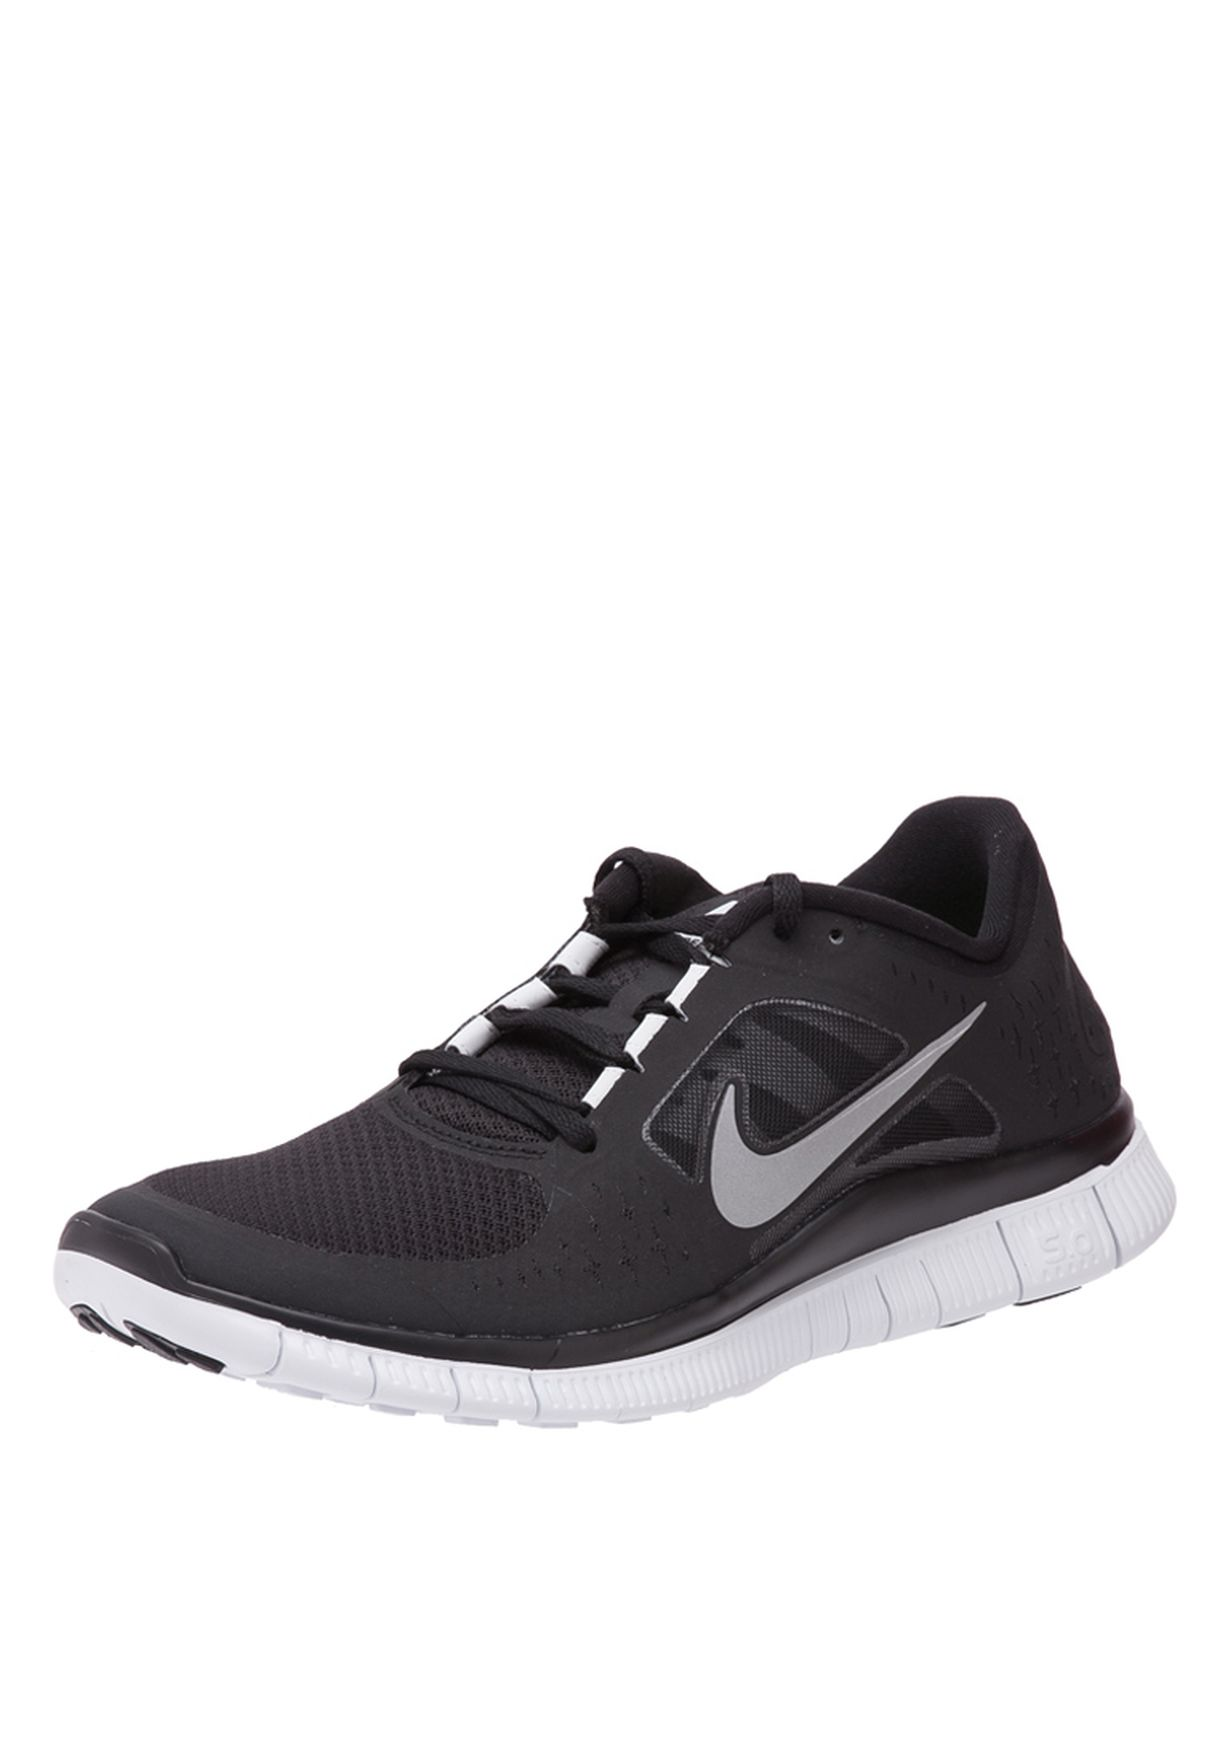 3fd982abed8c3 Shop Nike black Free Run Trainers 510642-002 for Men in UAE ...